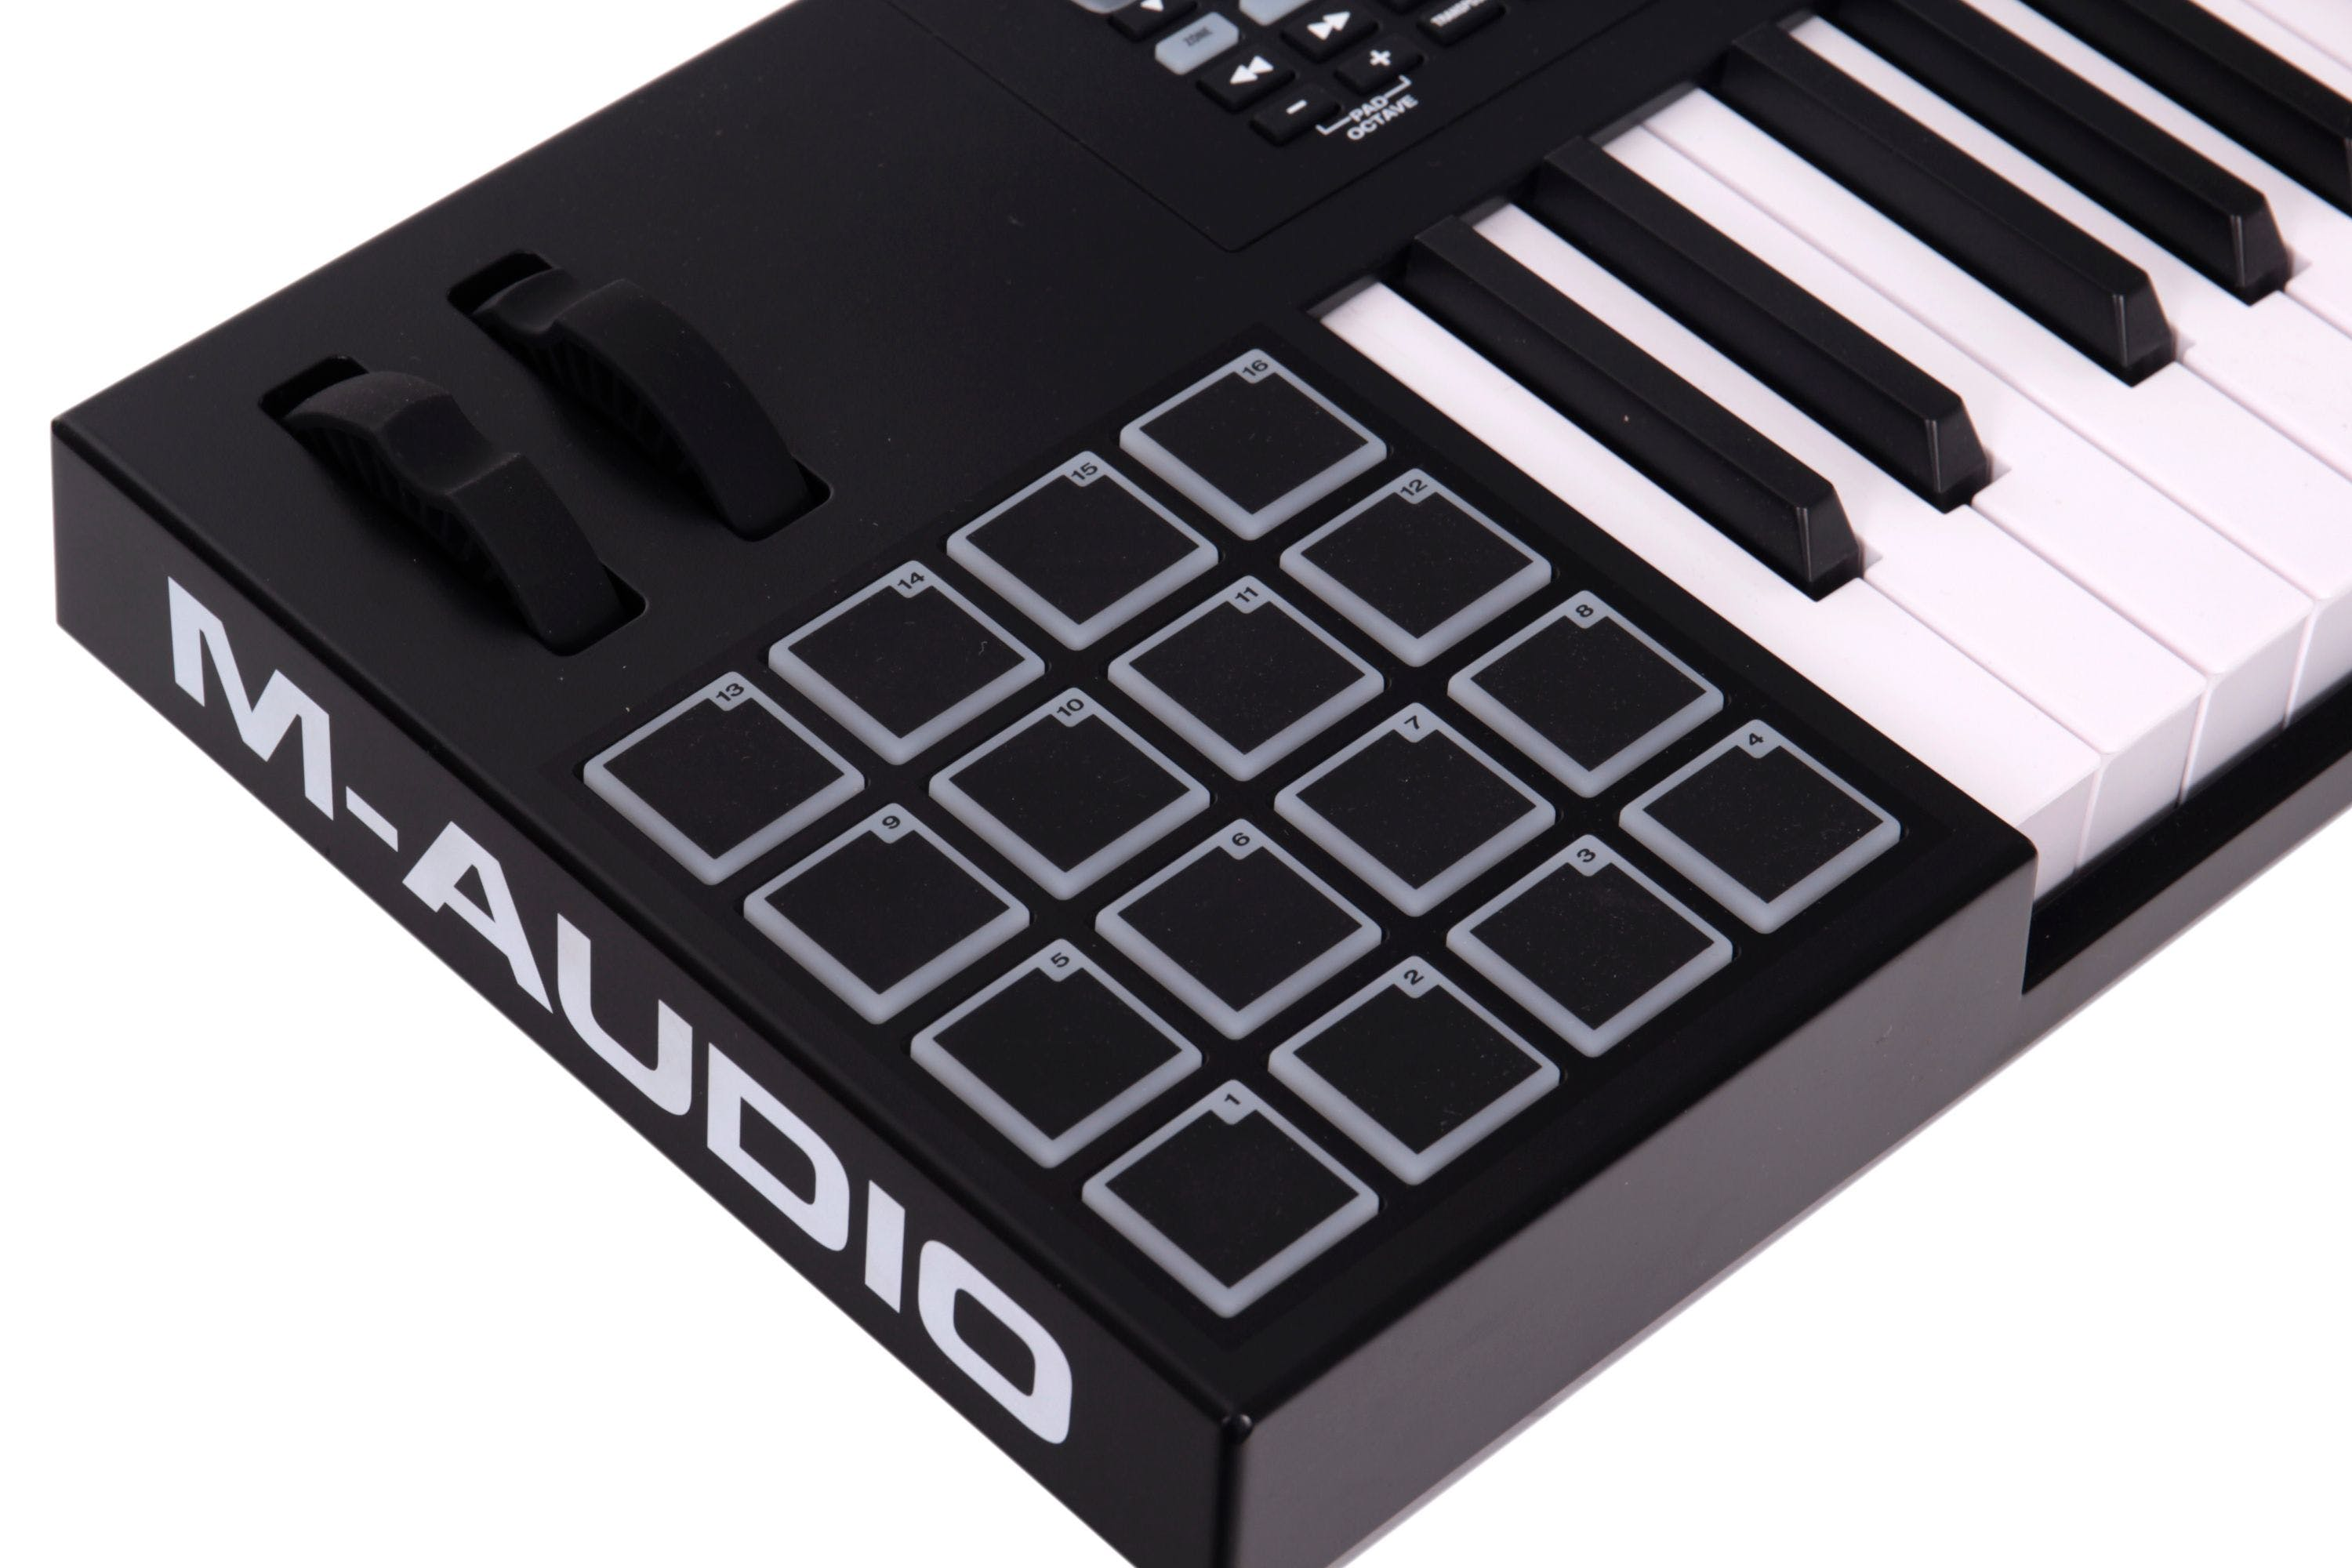 B Stock : M-Audio Code 61 Controller Keyboard in Black - Andertons Music Co.